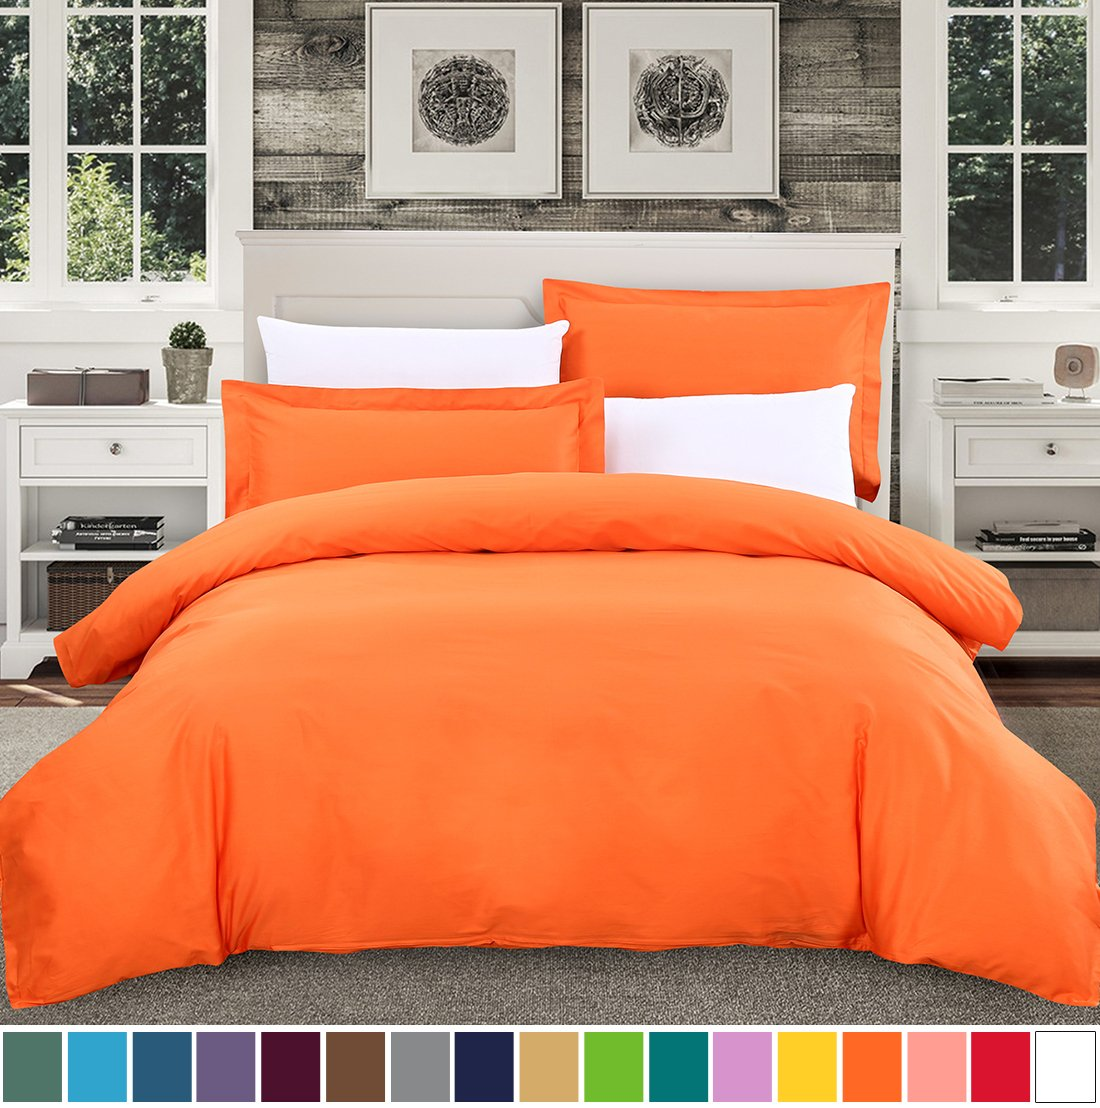 SUSYBAO 100% Natural Cotton 2 Pieces Duvet Cover Set Twin/Single Size Orange